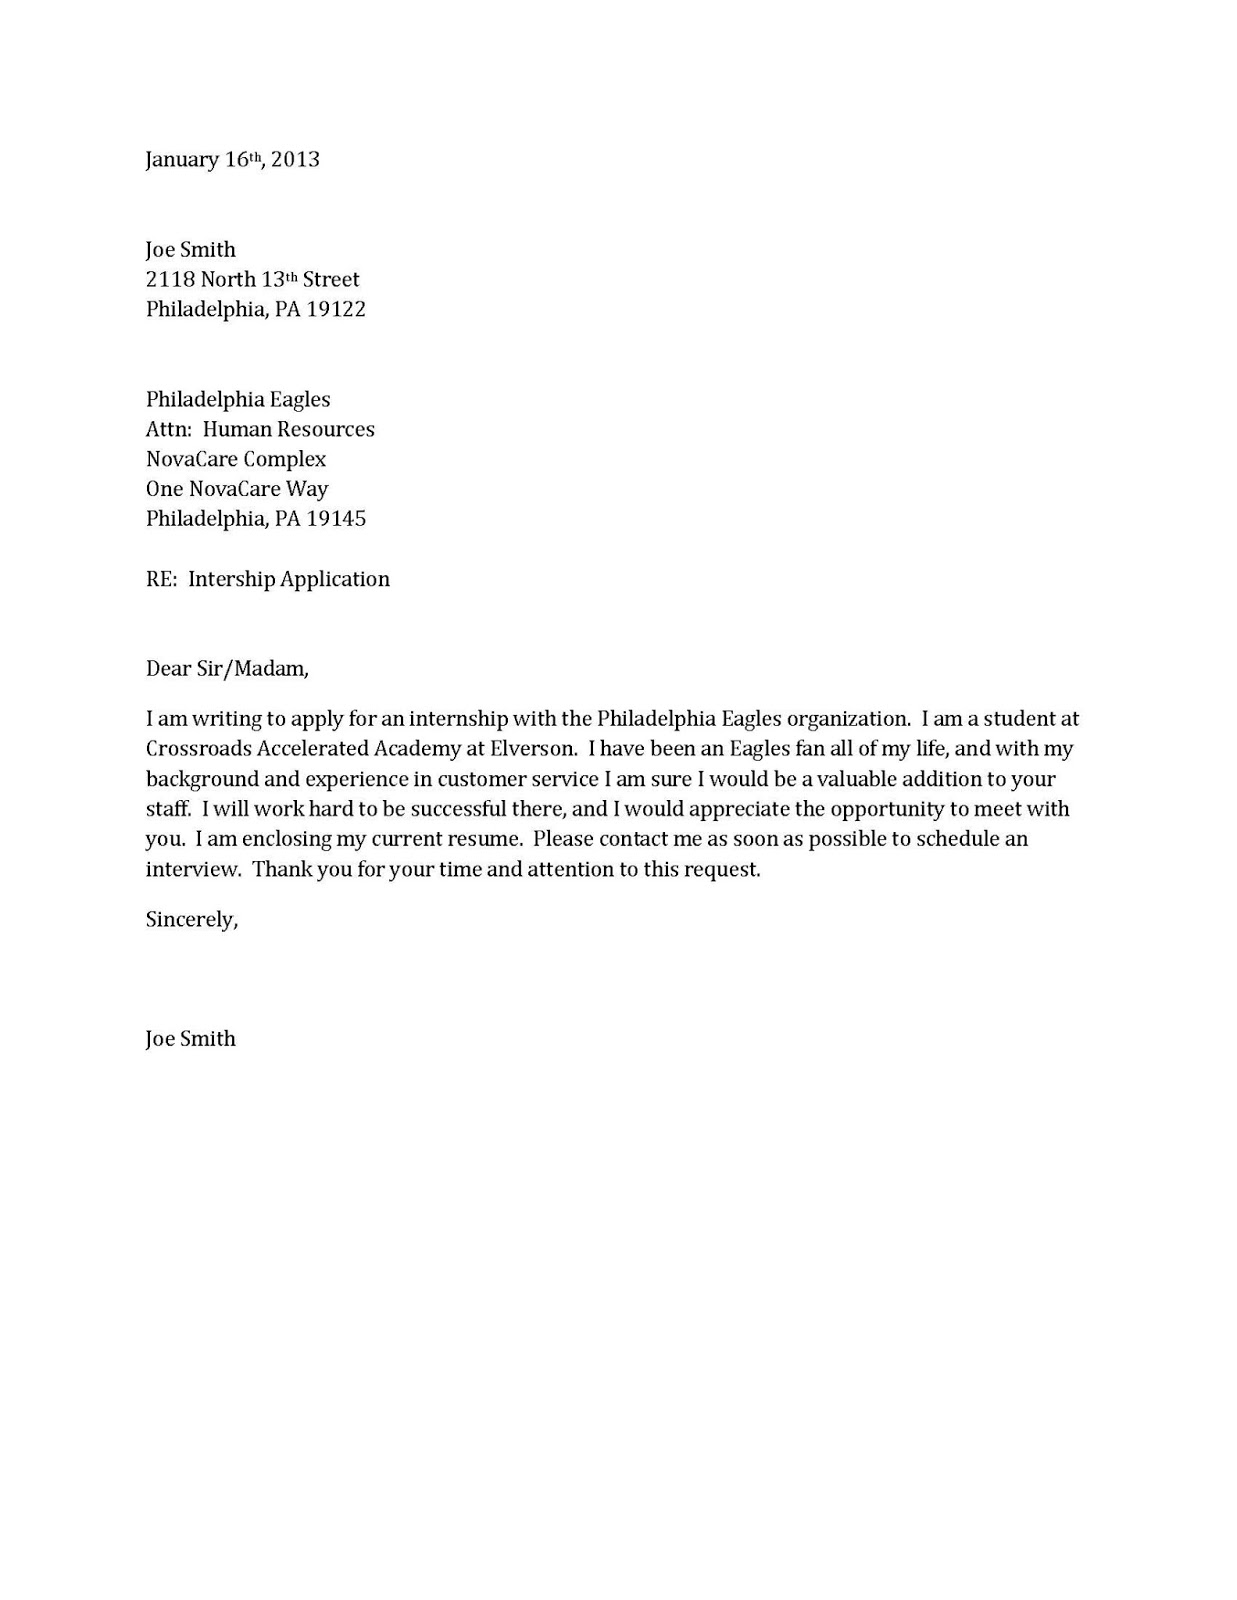 basic cover letter format - Example Of Resume Cover Letter